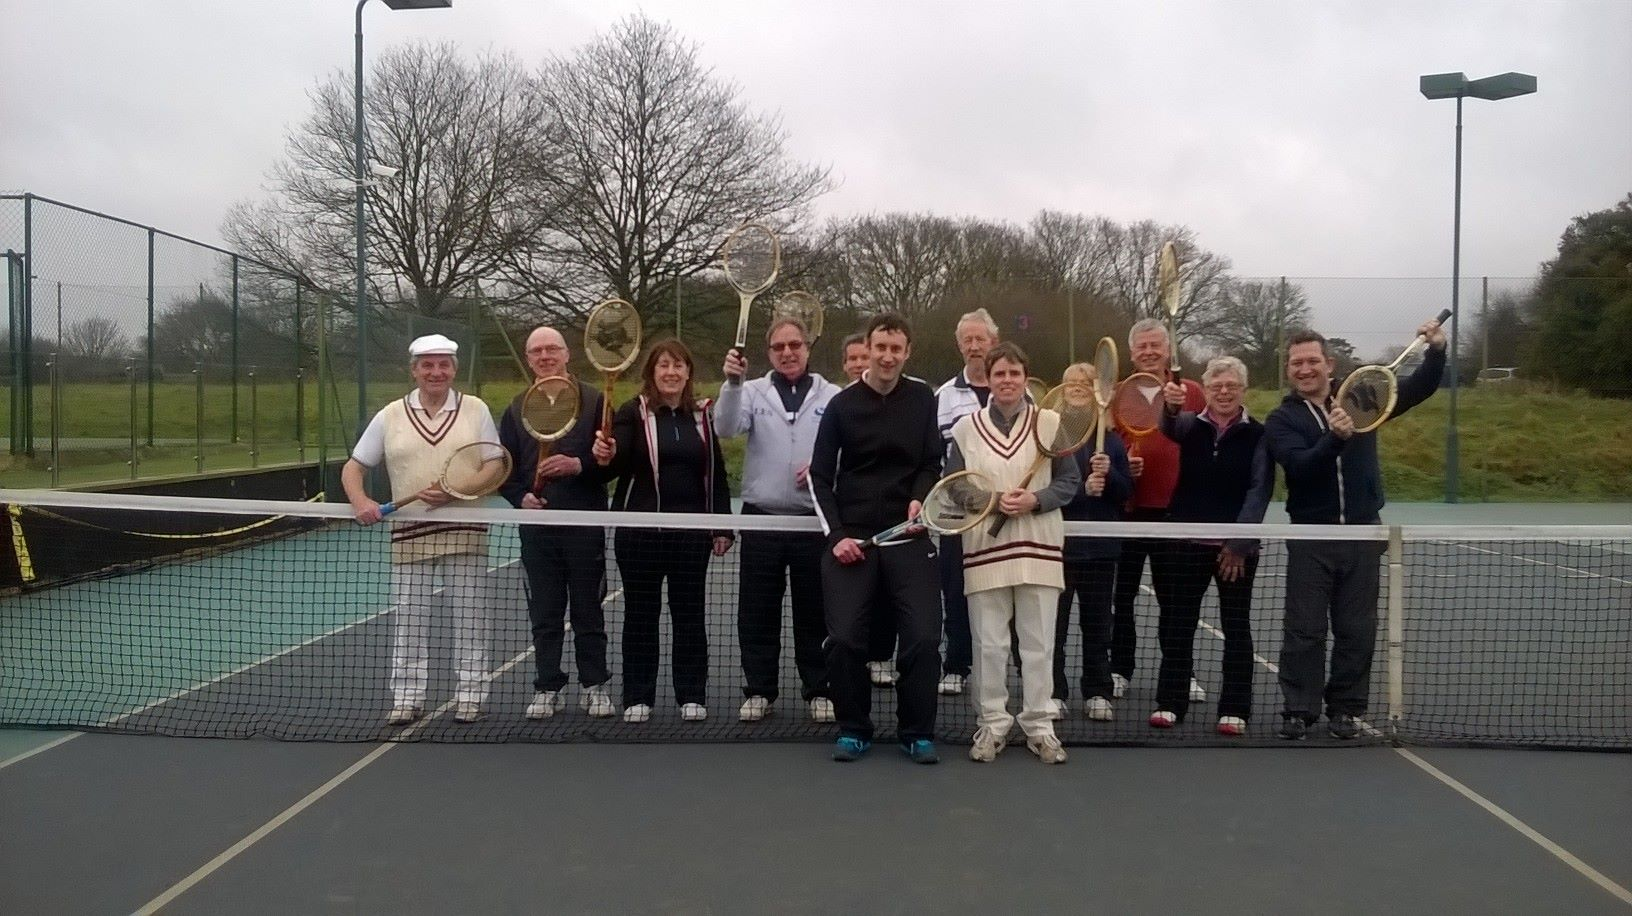 Wooden racket tournament from last year